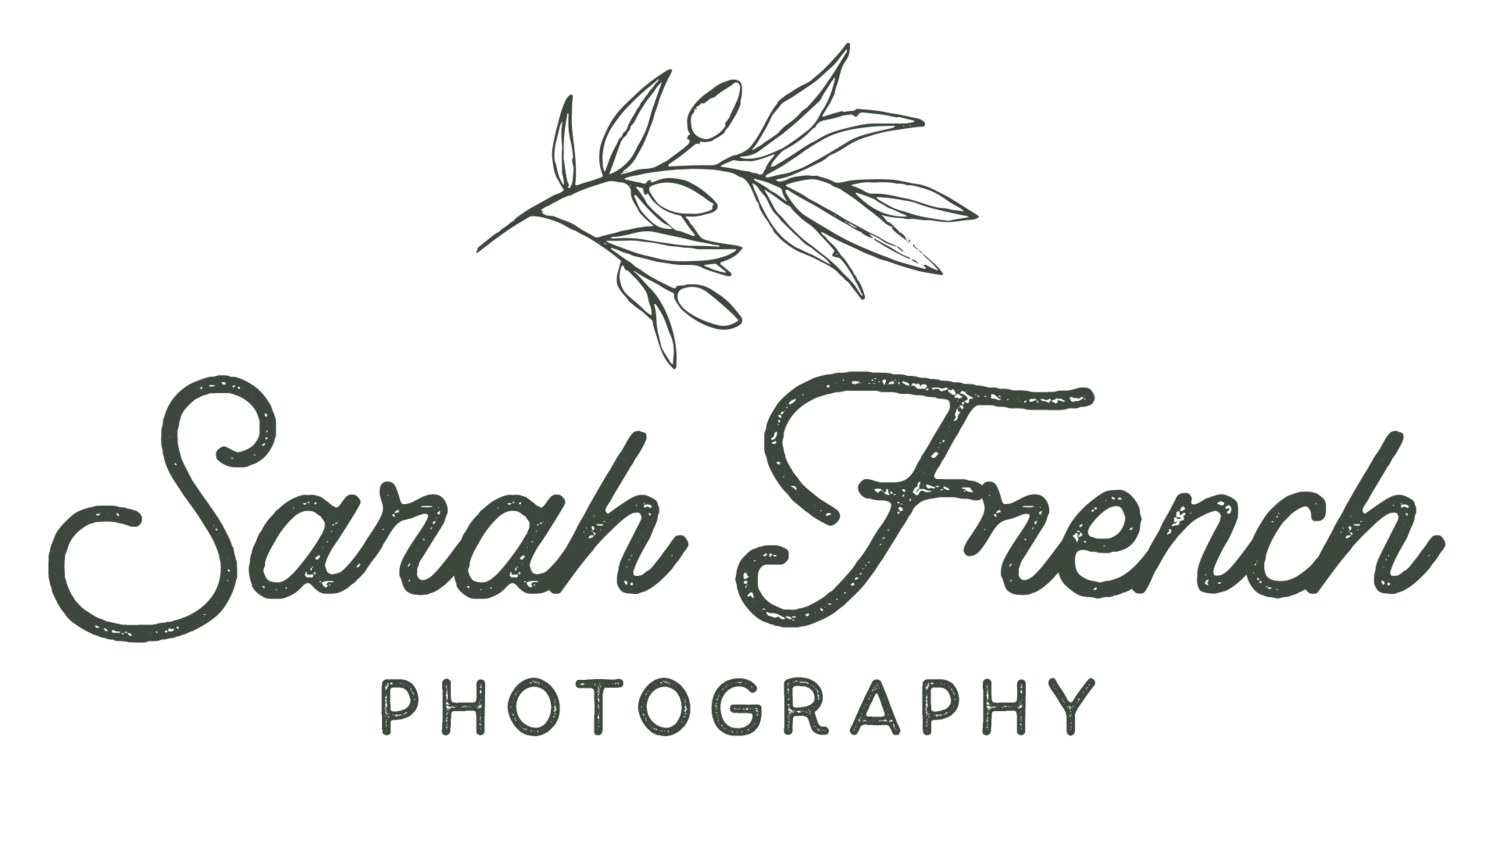 Sarah French Photo